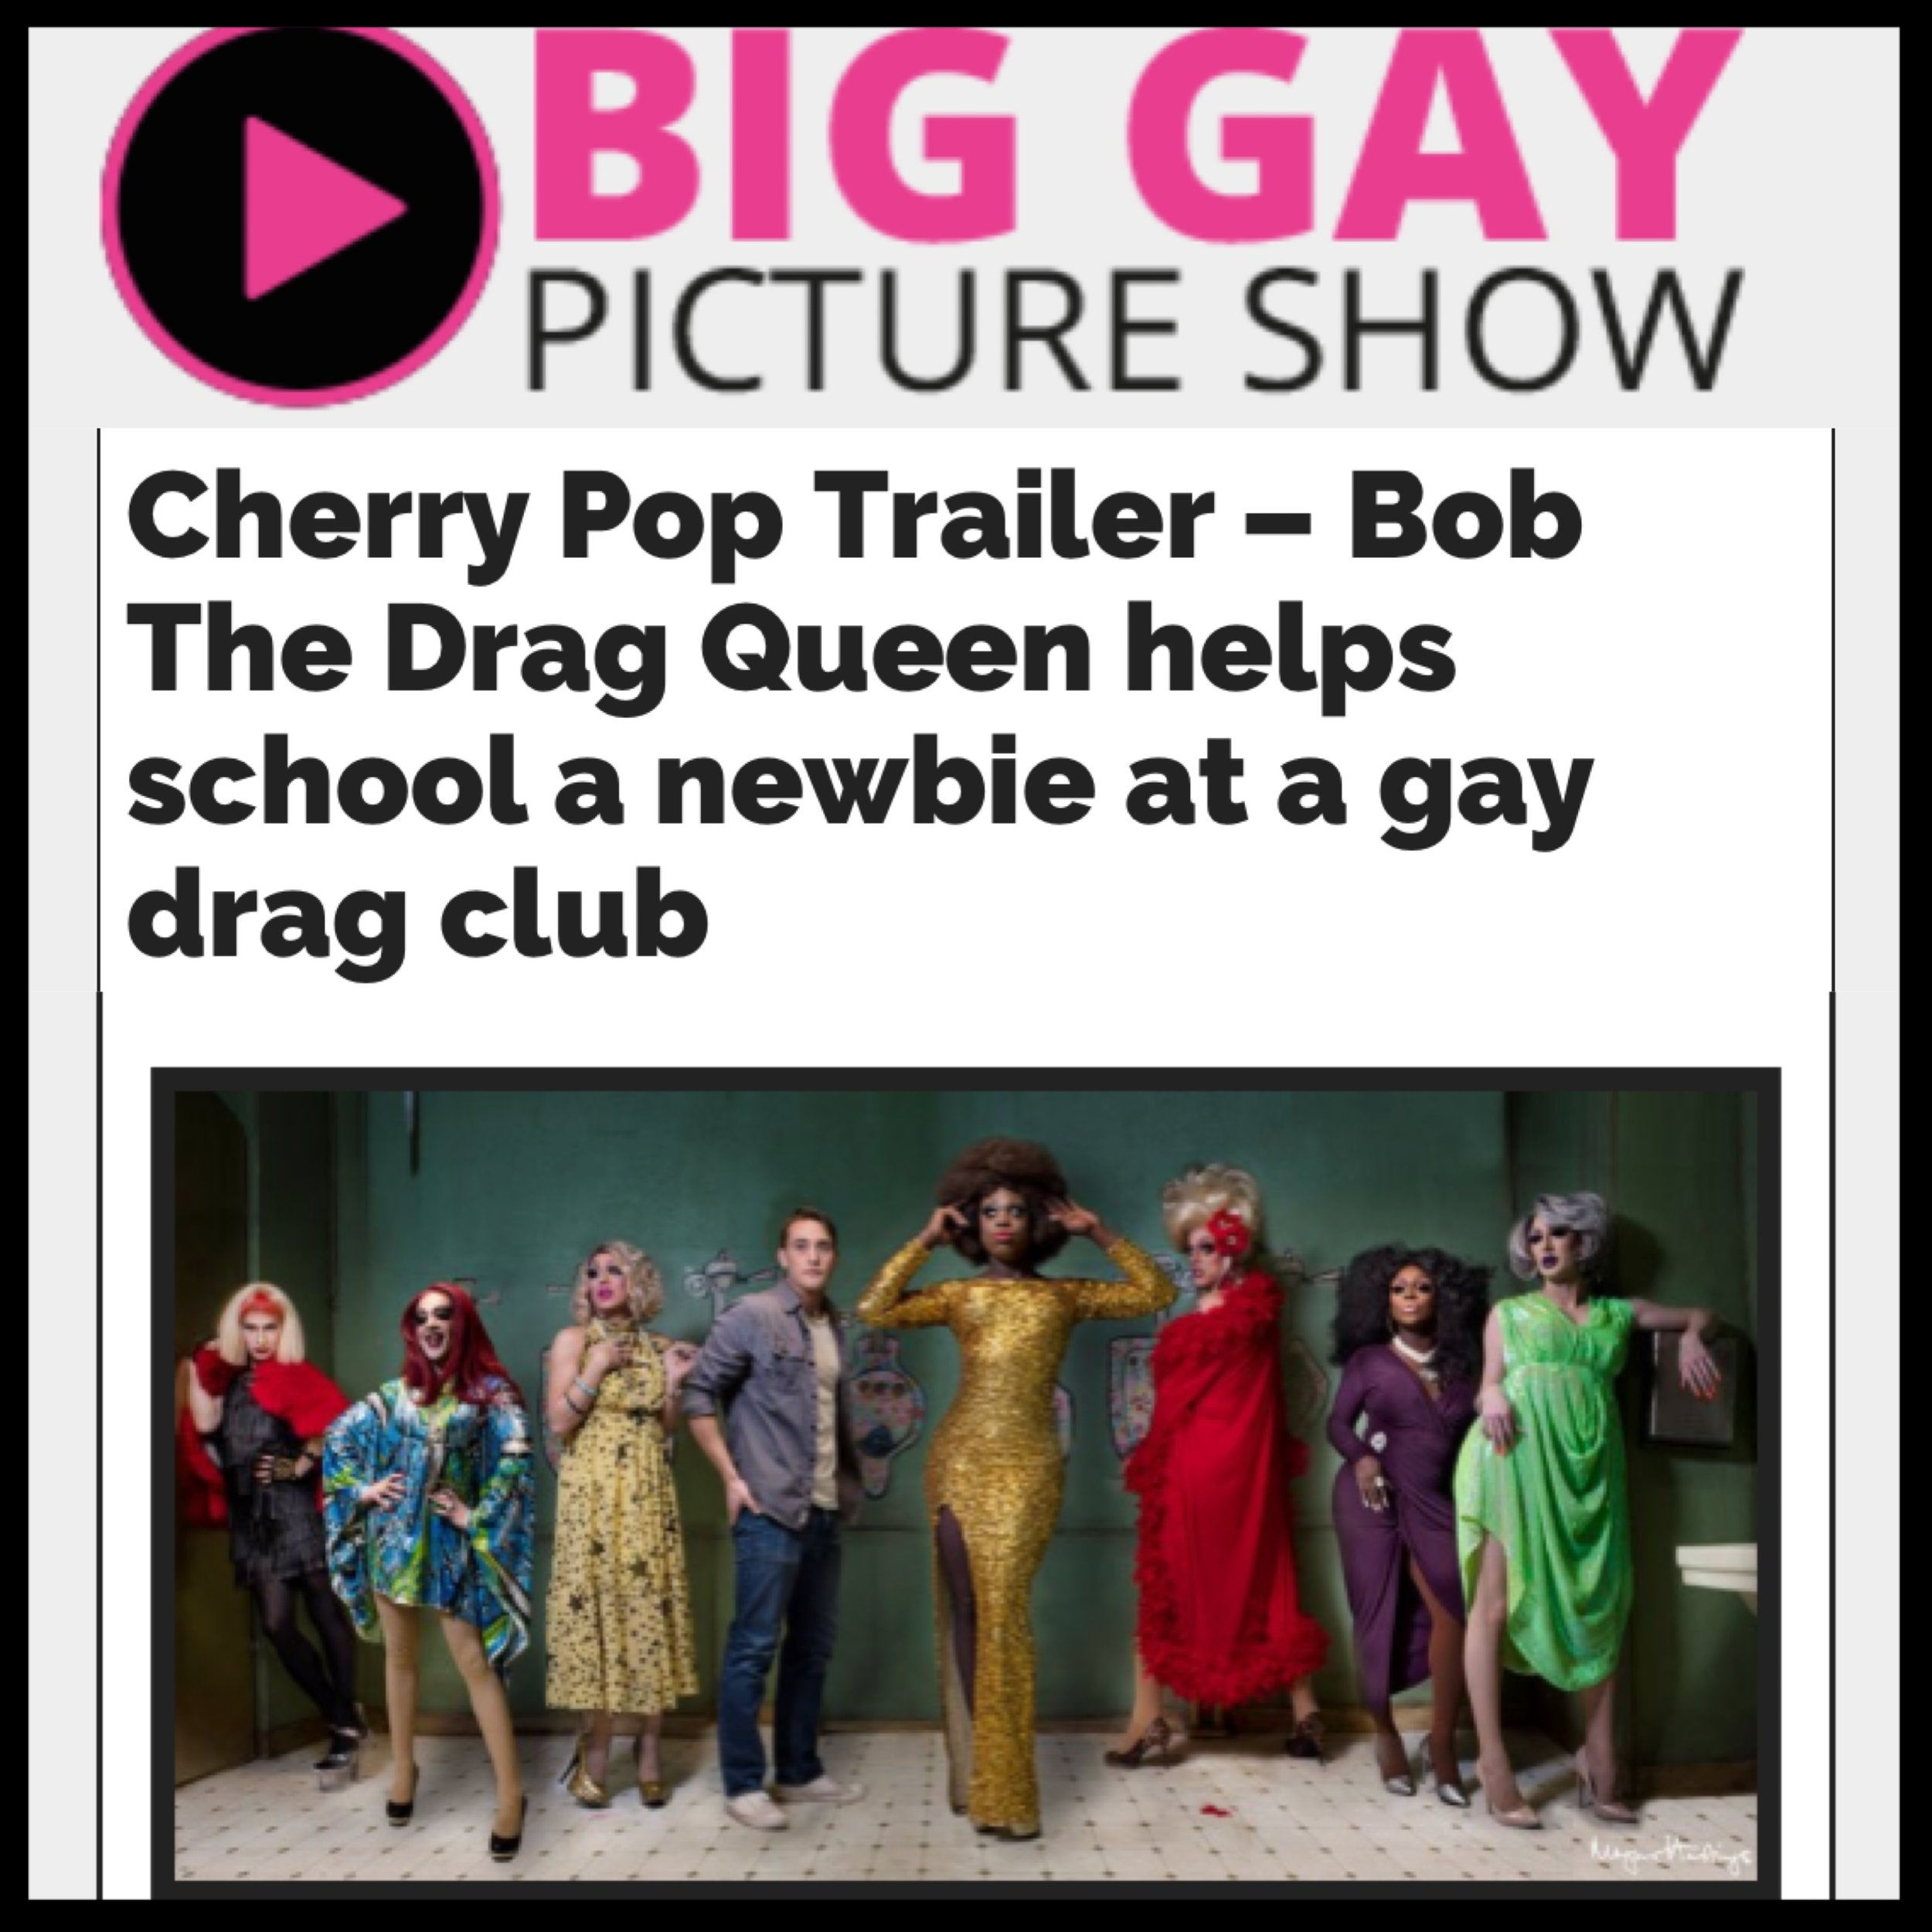 BIG GAY PICTURE SHOW